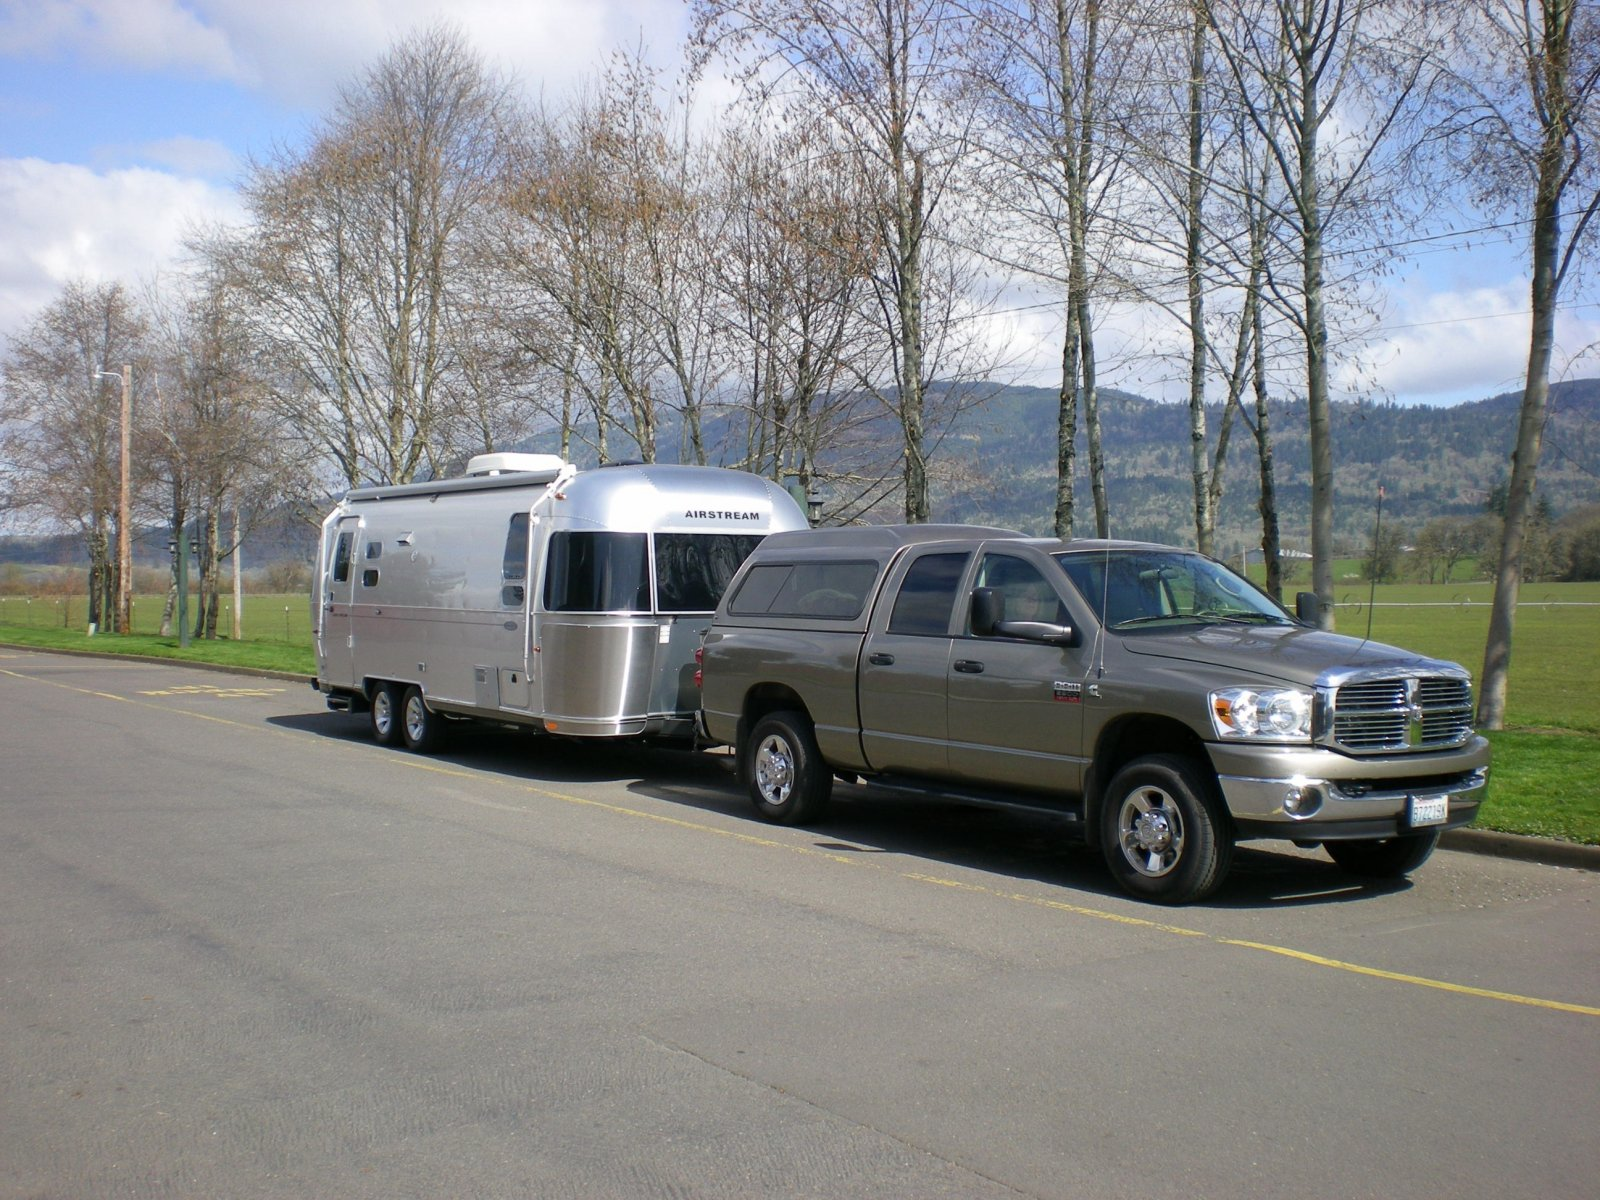 Click image for larger version  Name:New Airstream 007.jpg Views:327 Size:424.6 KB ID:232136